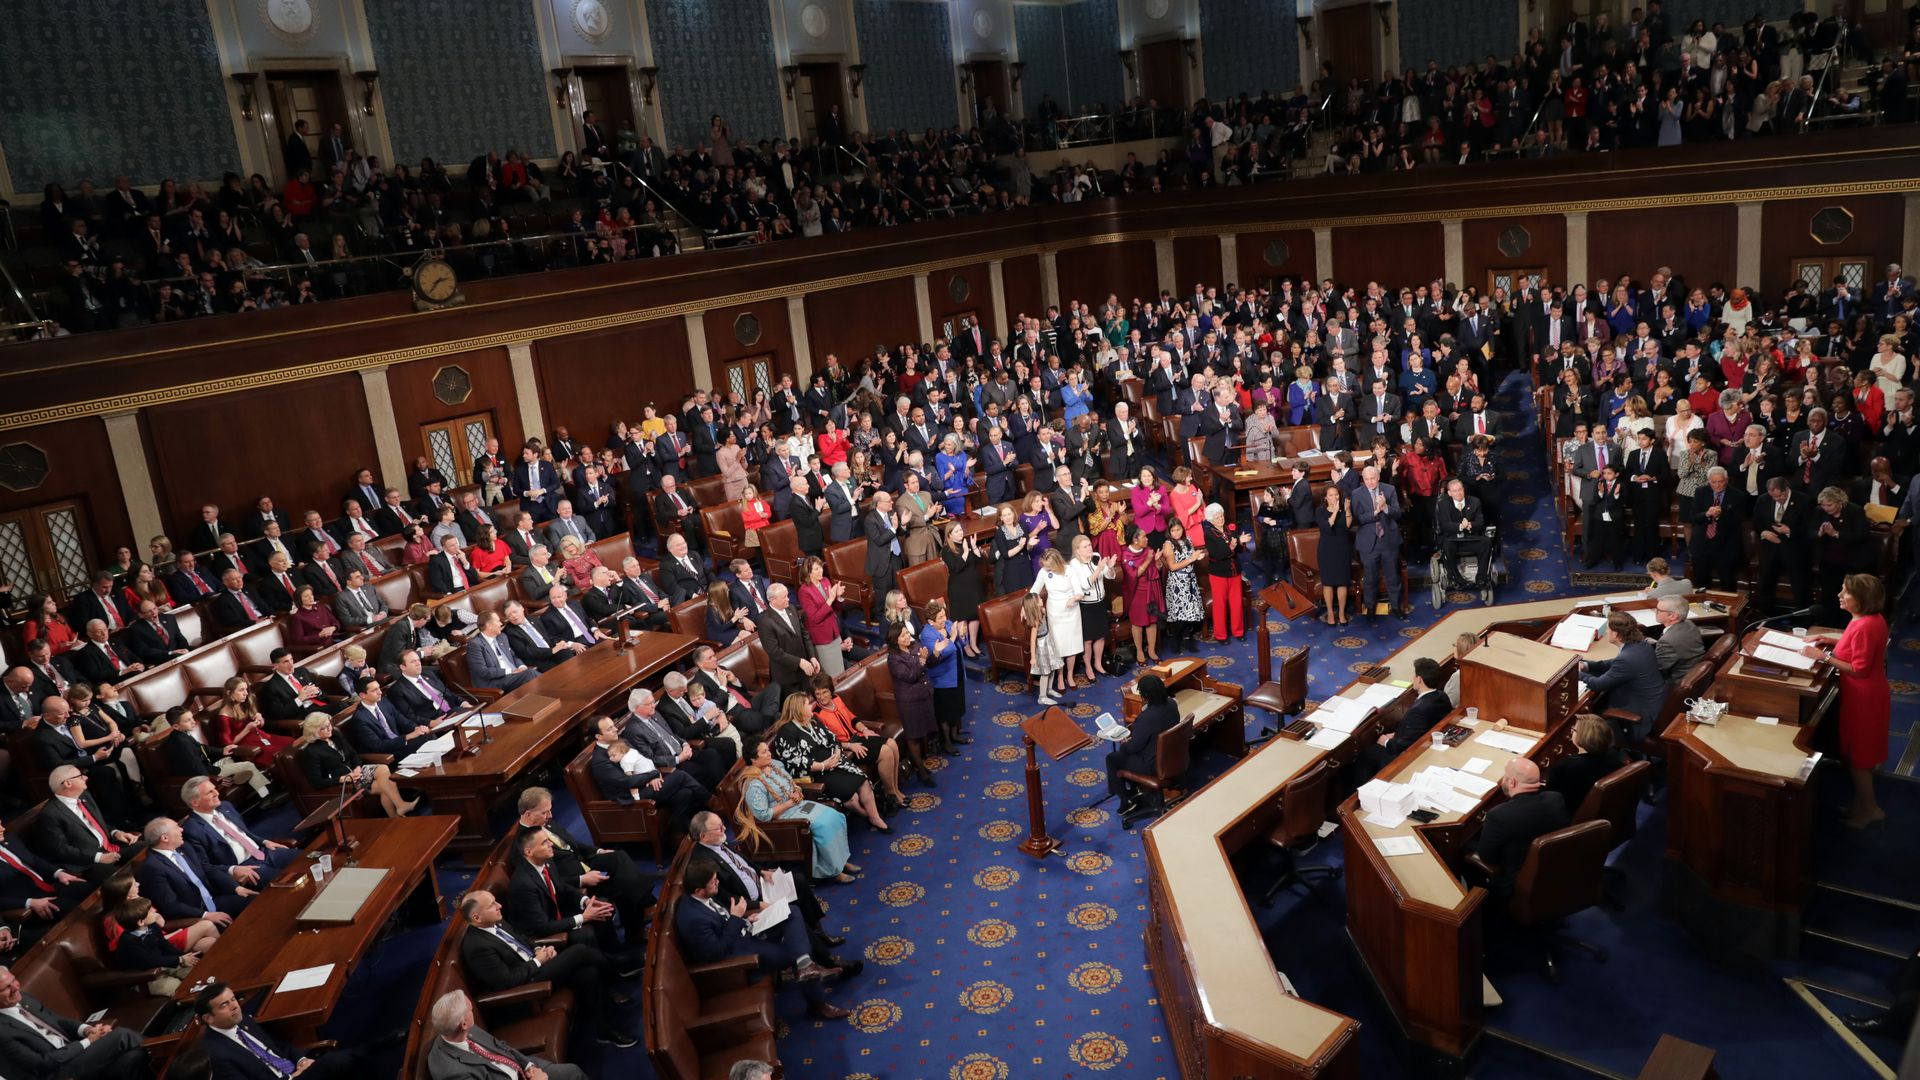 Congressional members during the first session of the 116th Congress Thursday.